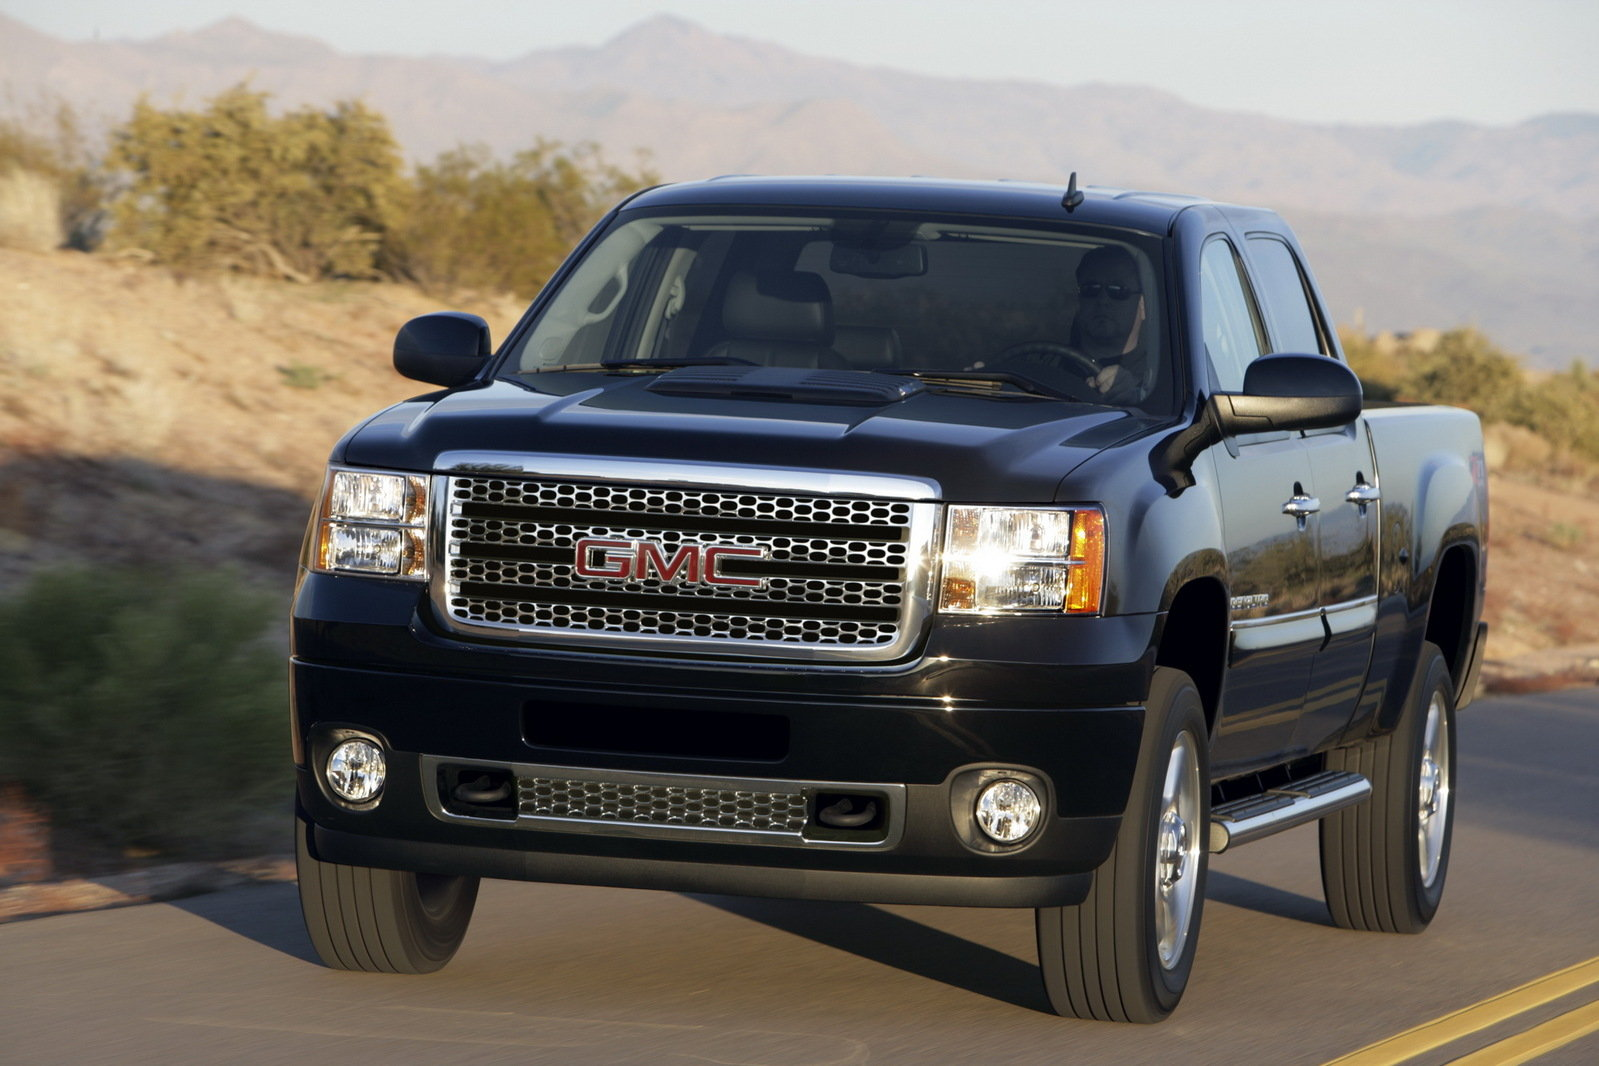 2011 GMC Sierra Denali HD Pictures, Photos, Wallpapers ...